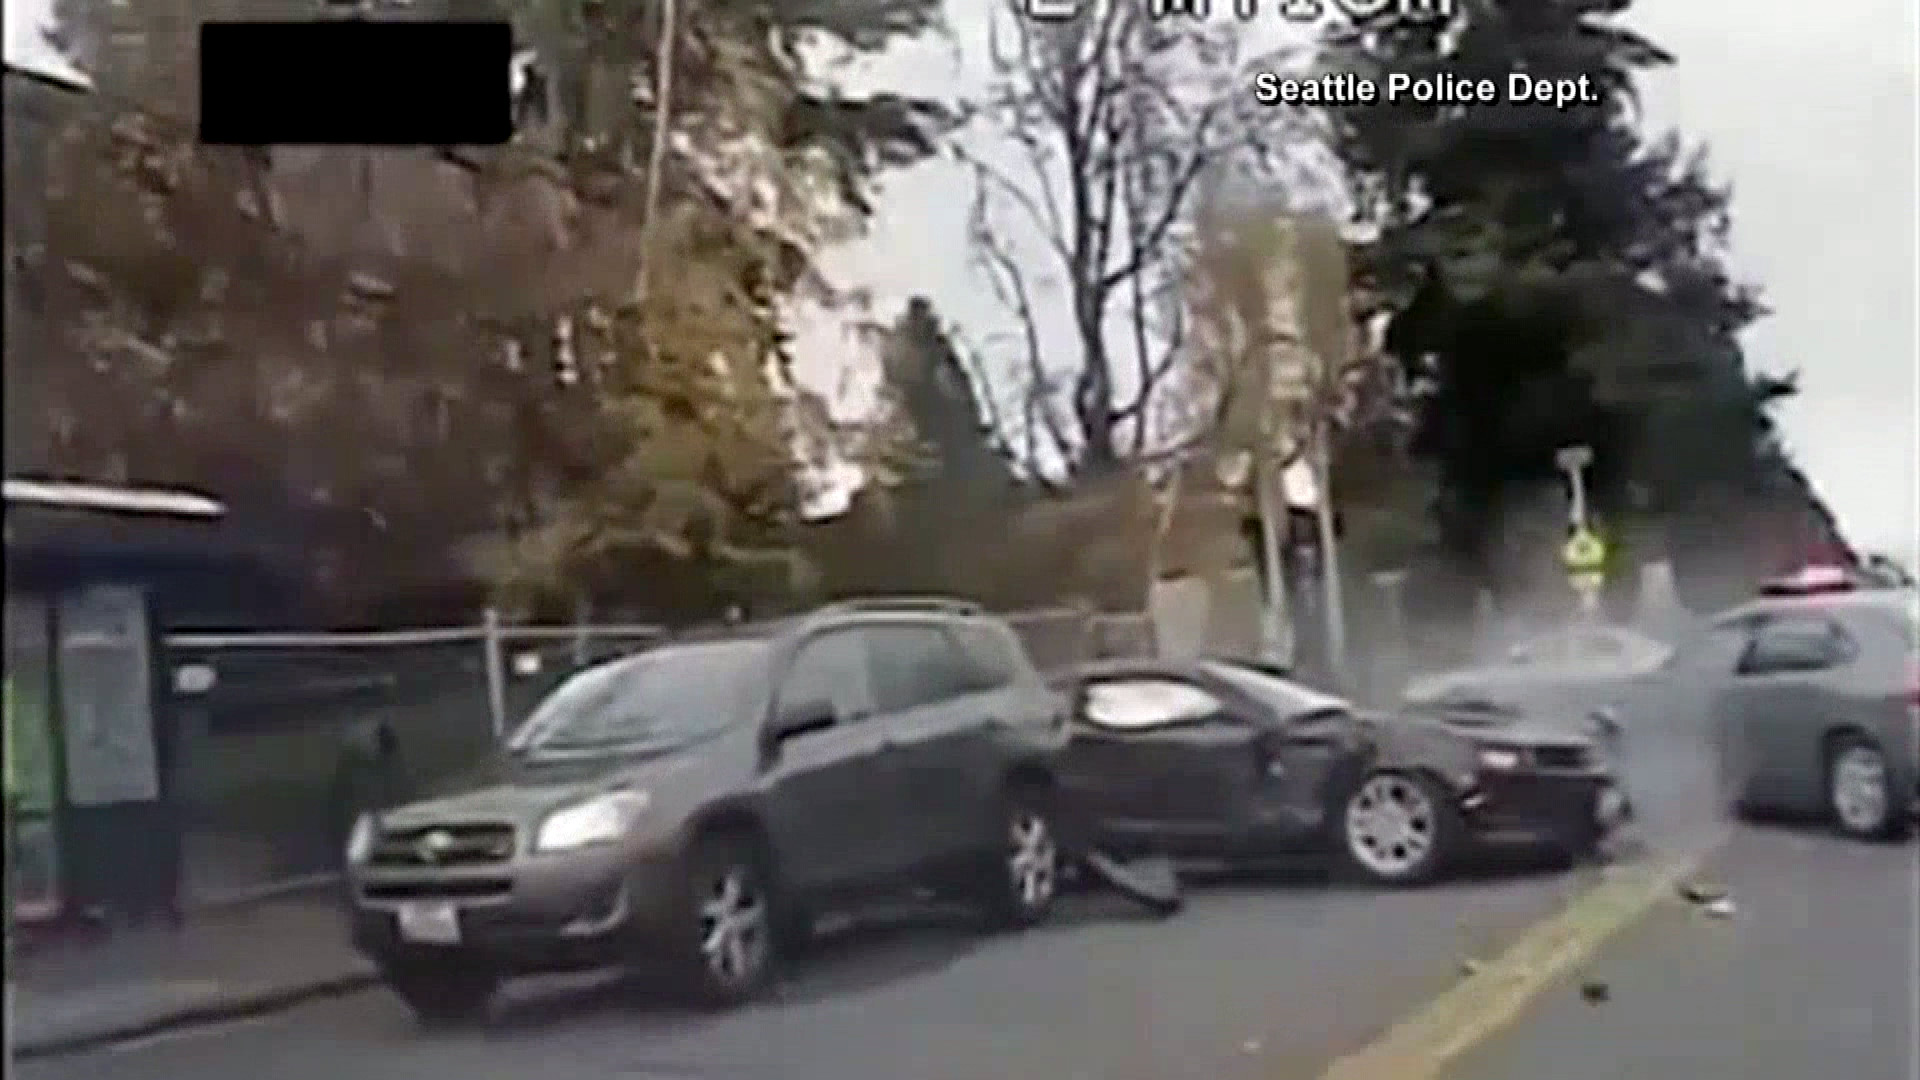 Amazing Video of Seattle Police Chase That Ended in Fatal Shooting